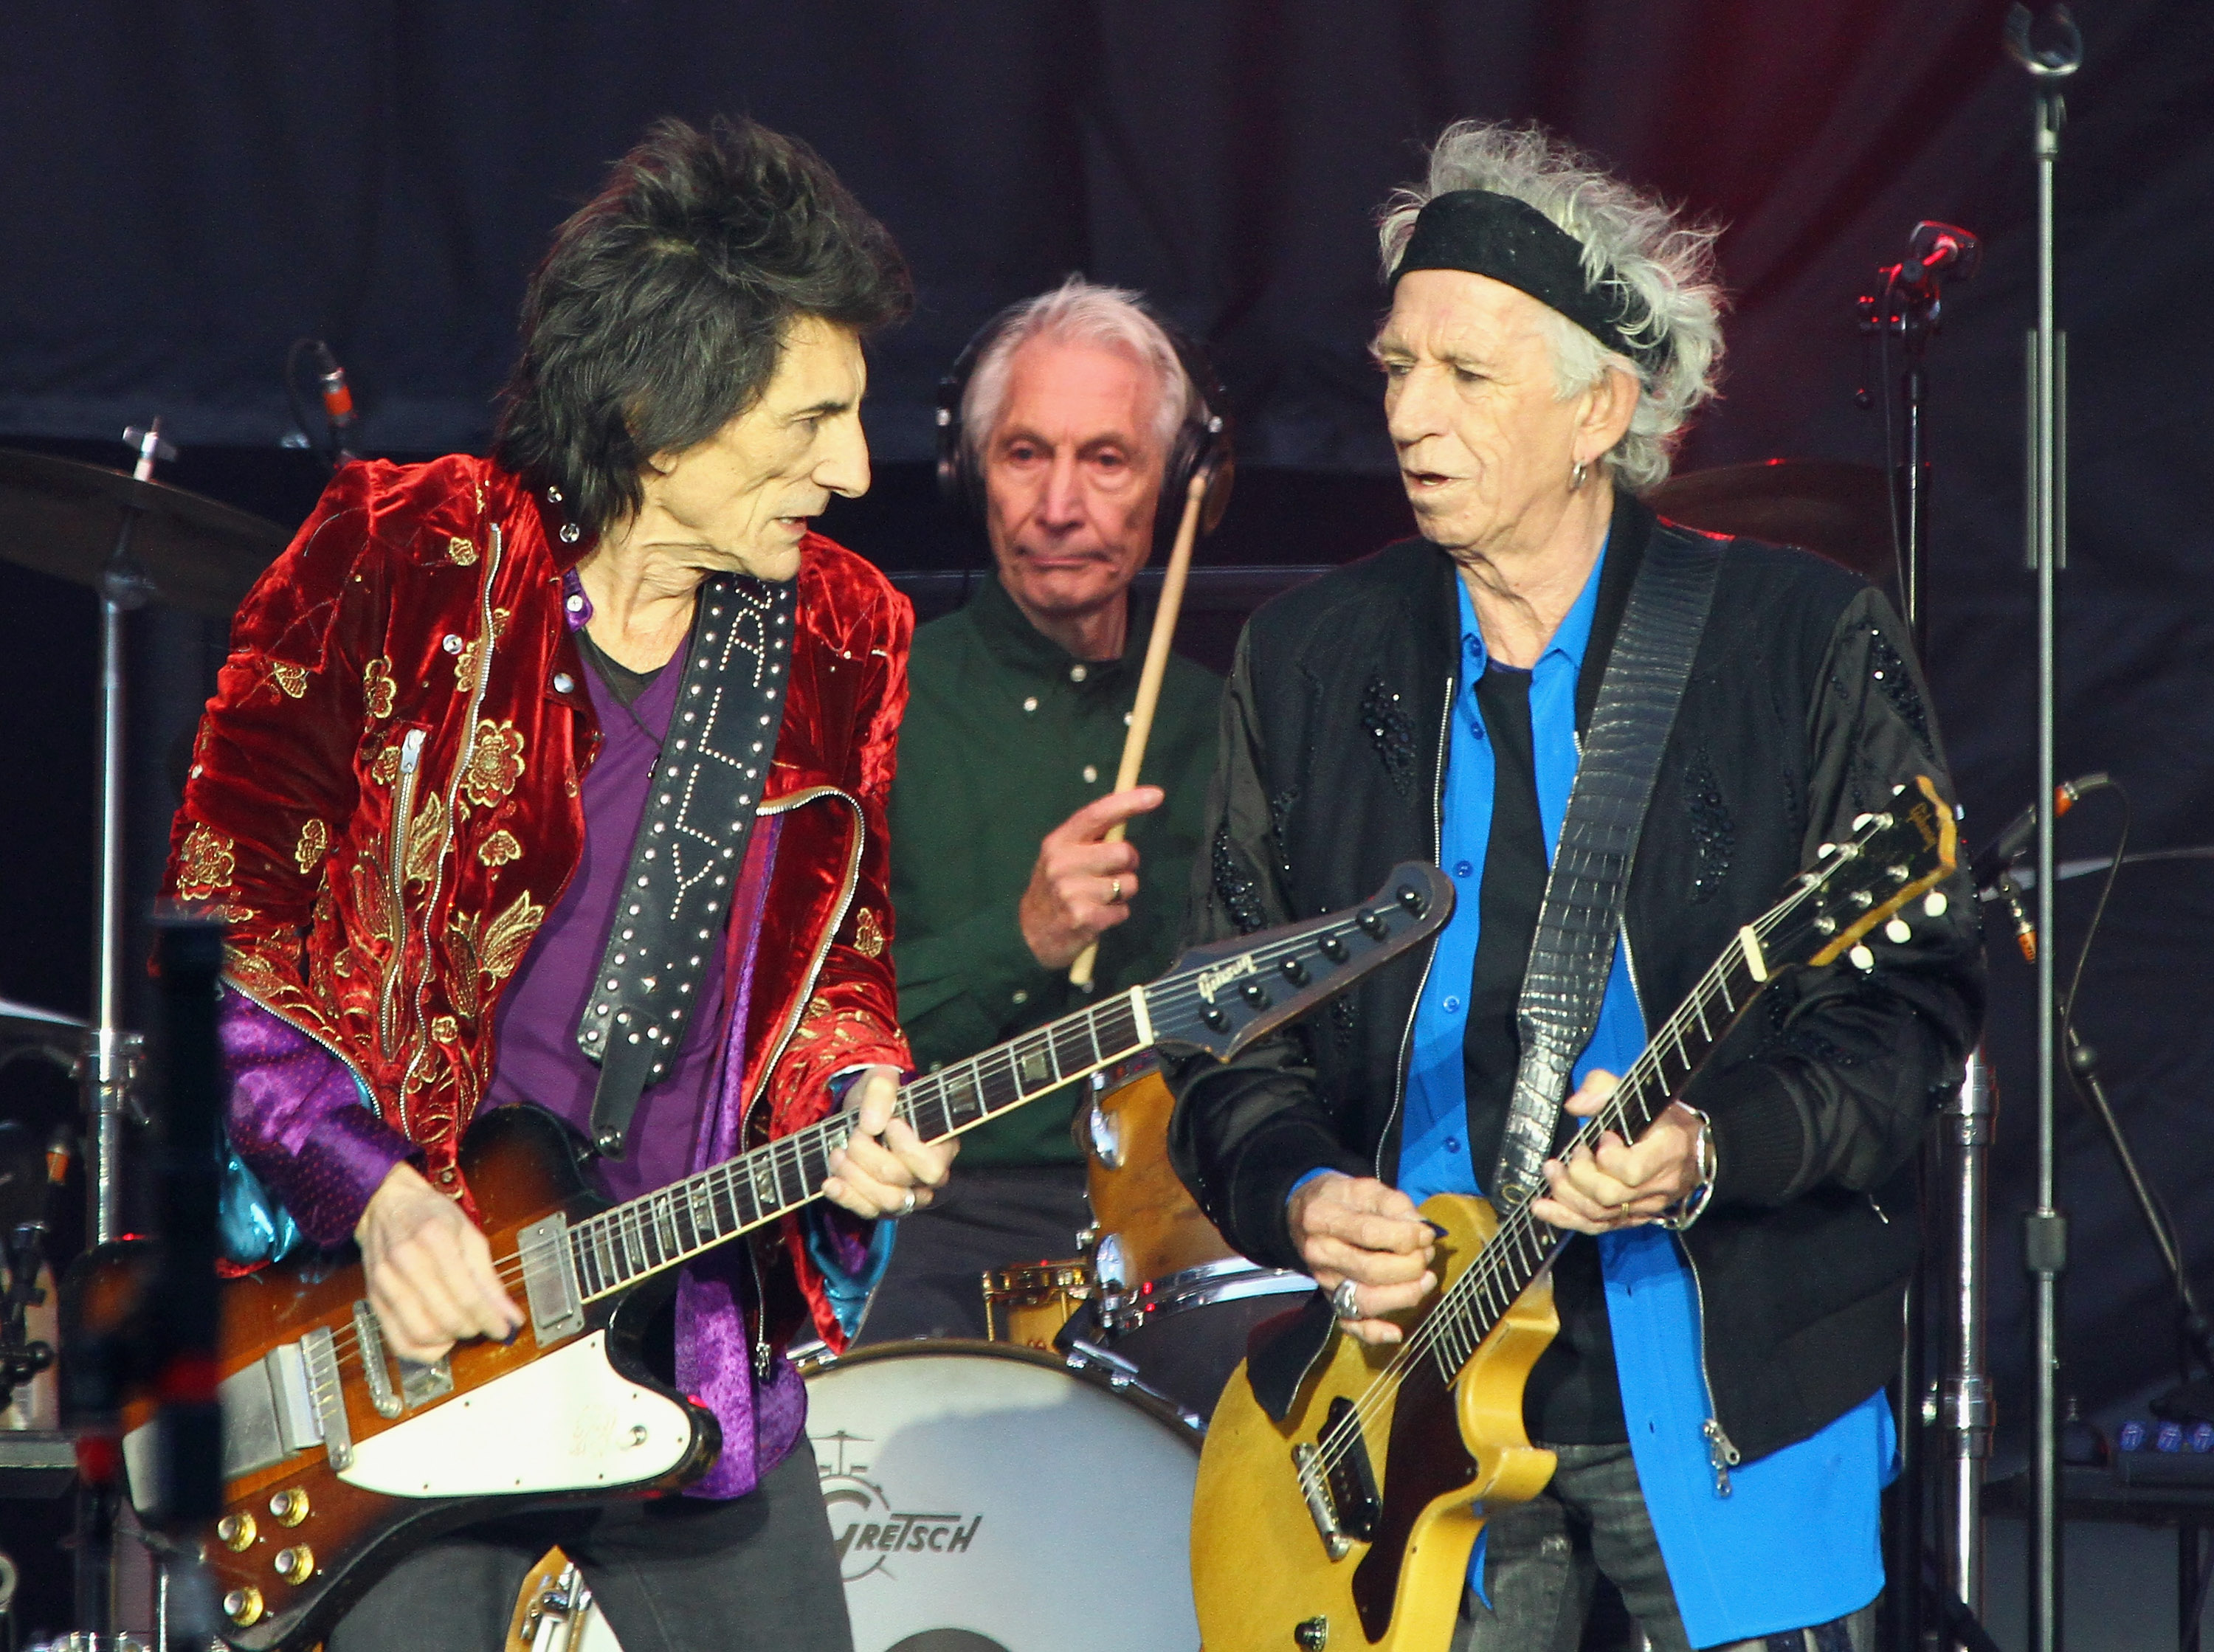 The Rolling Stones kick off European tour with massive